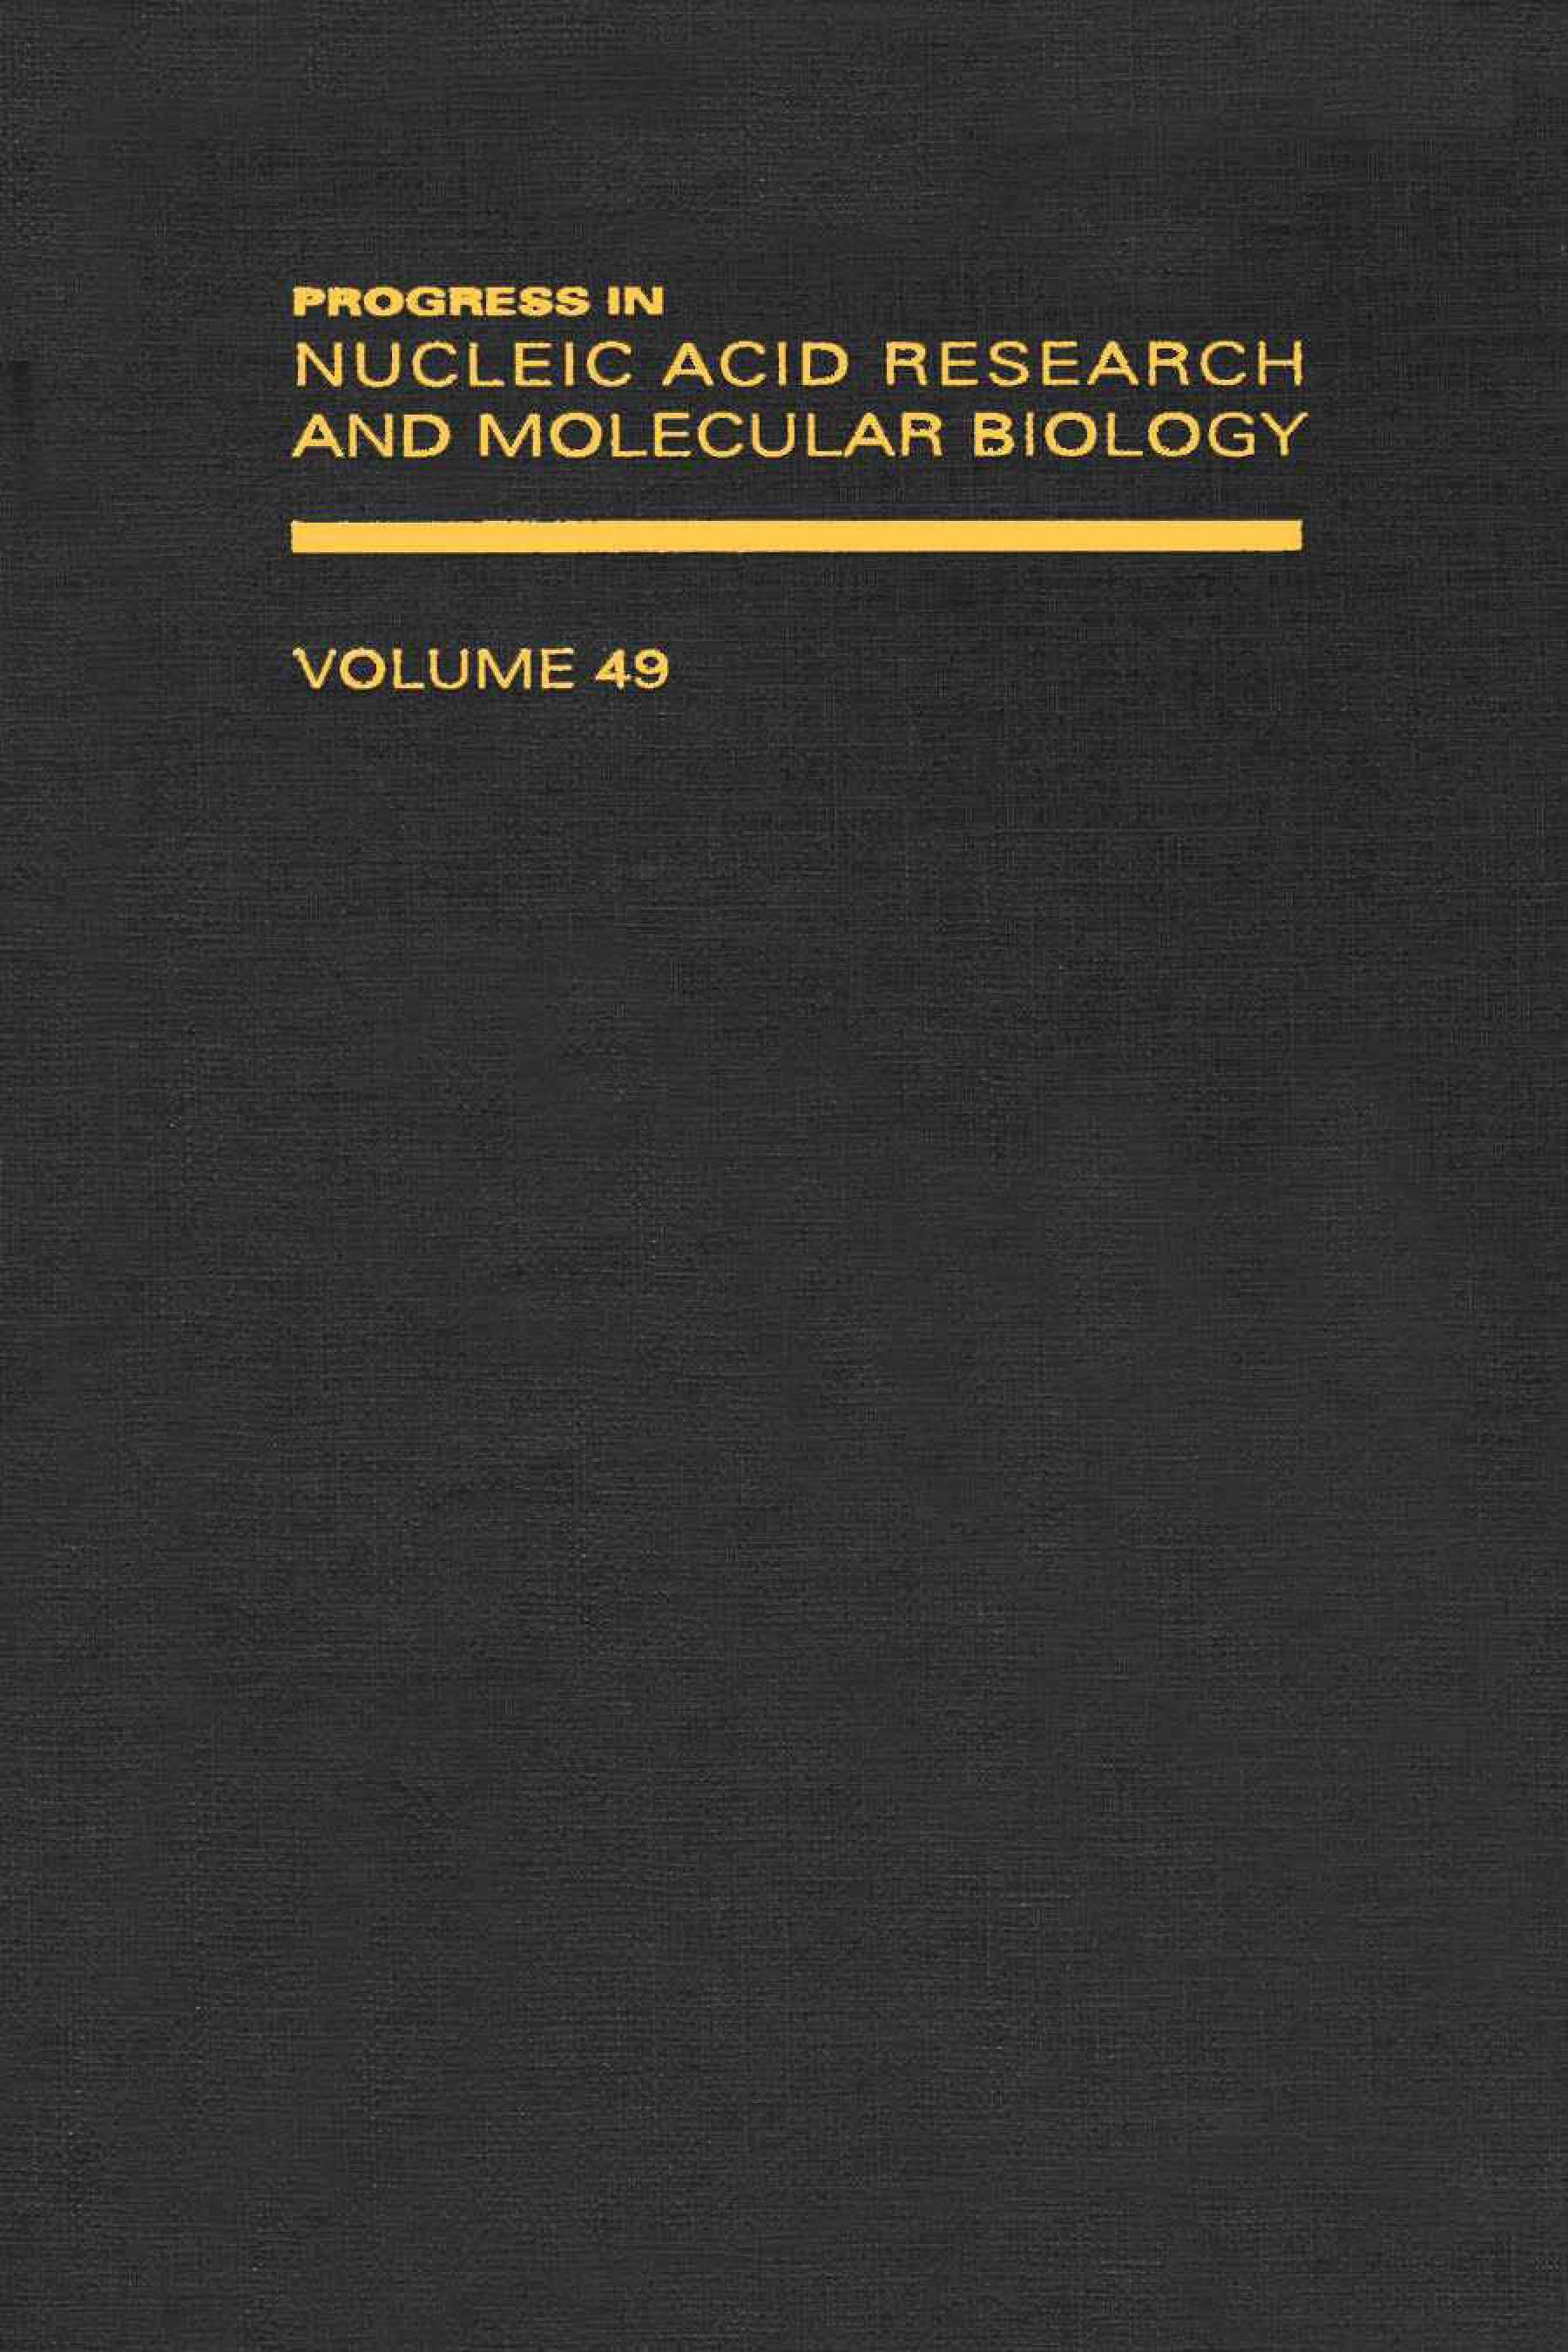 Progress in Nucleic Acid Research and Molecular Biology EB9780080863375